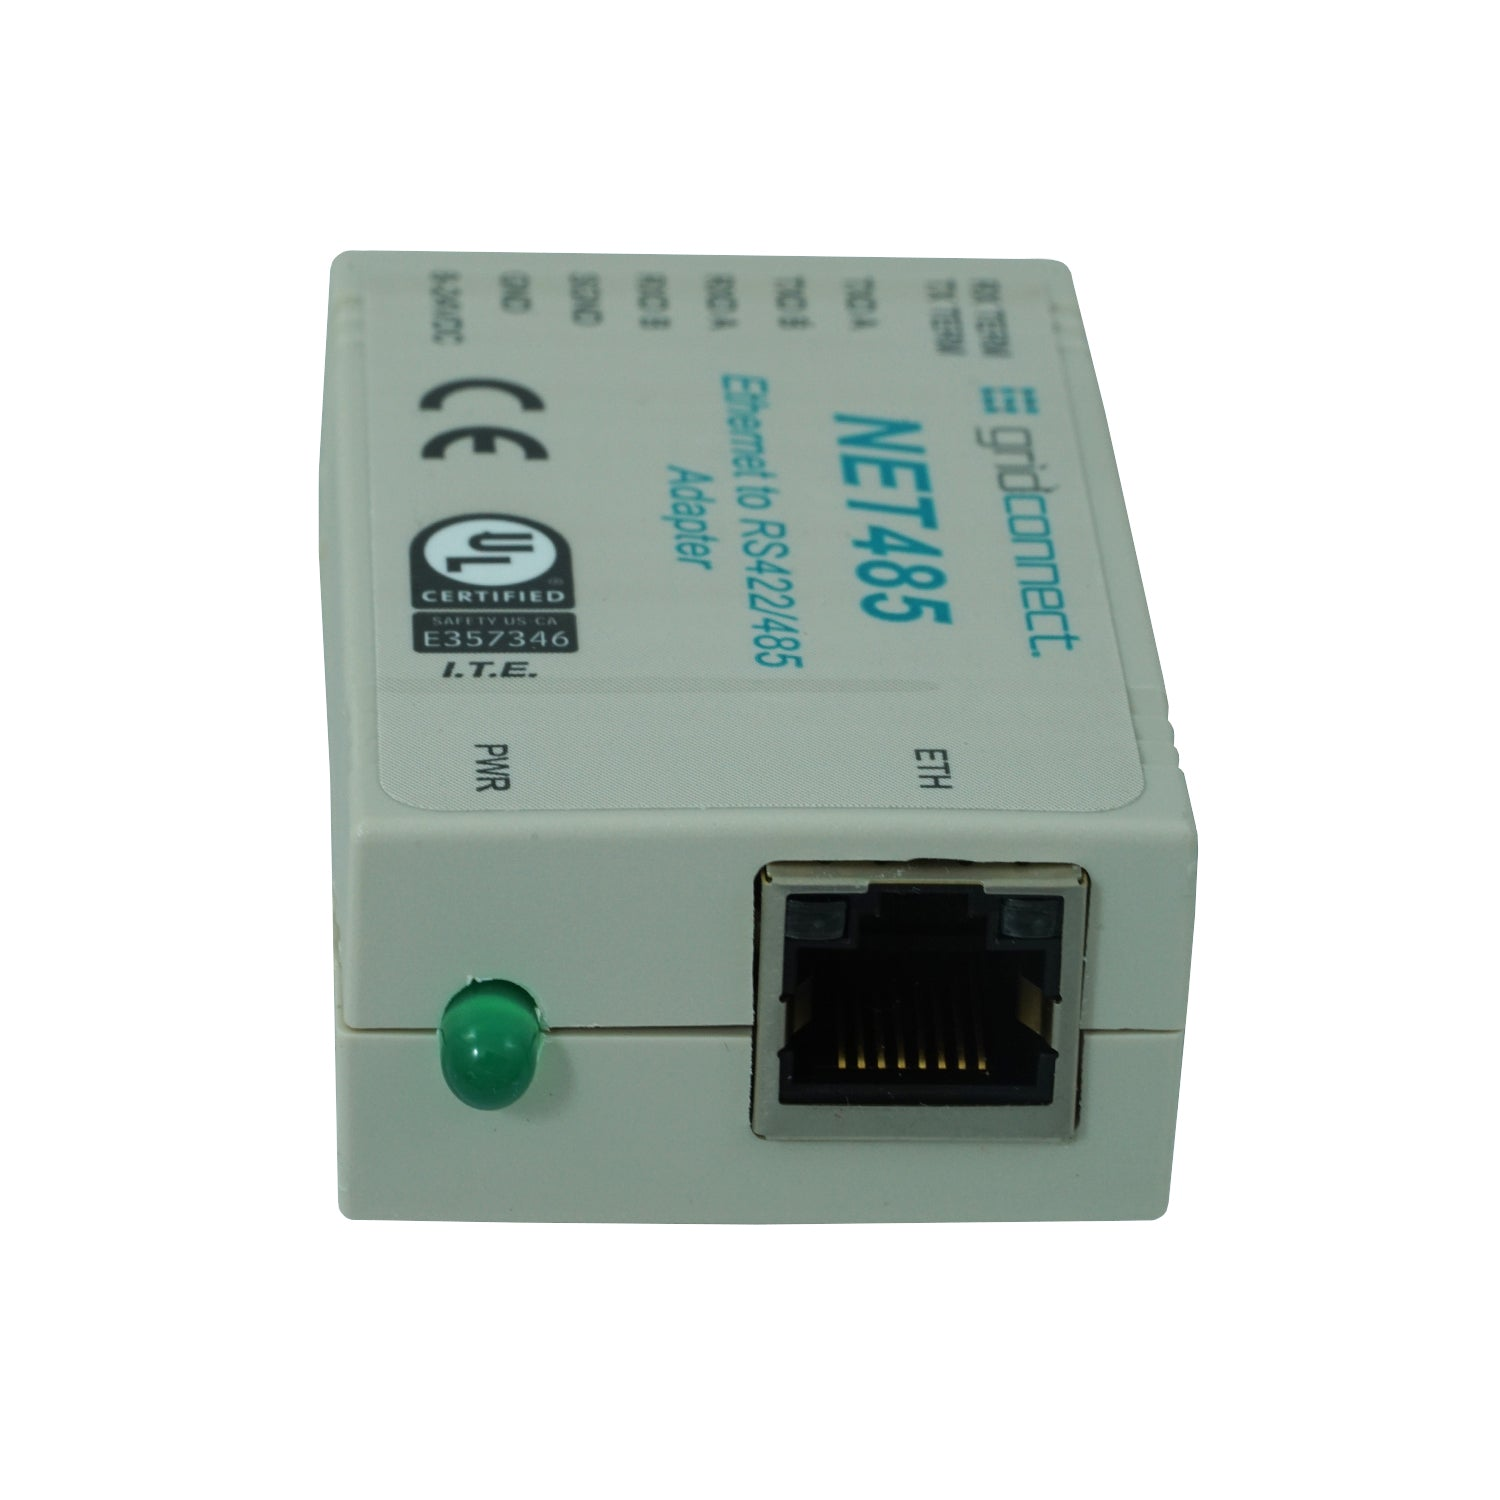 NET485 - RS485 Ethernet Adapter